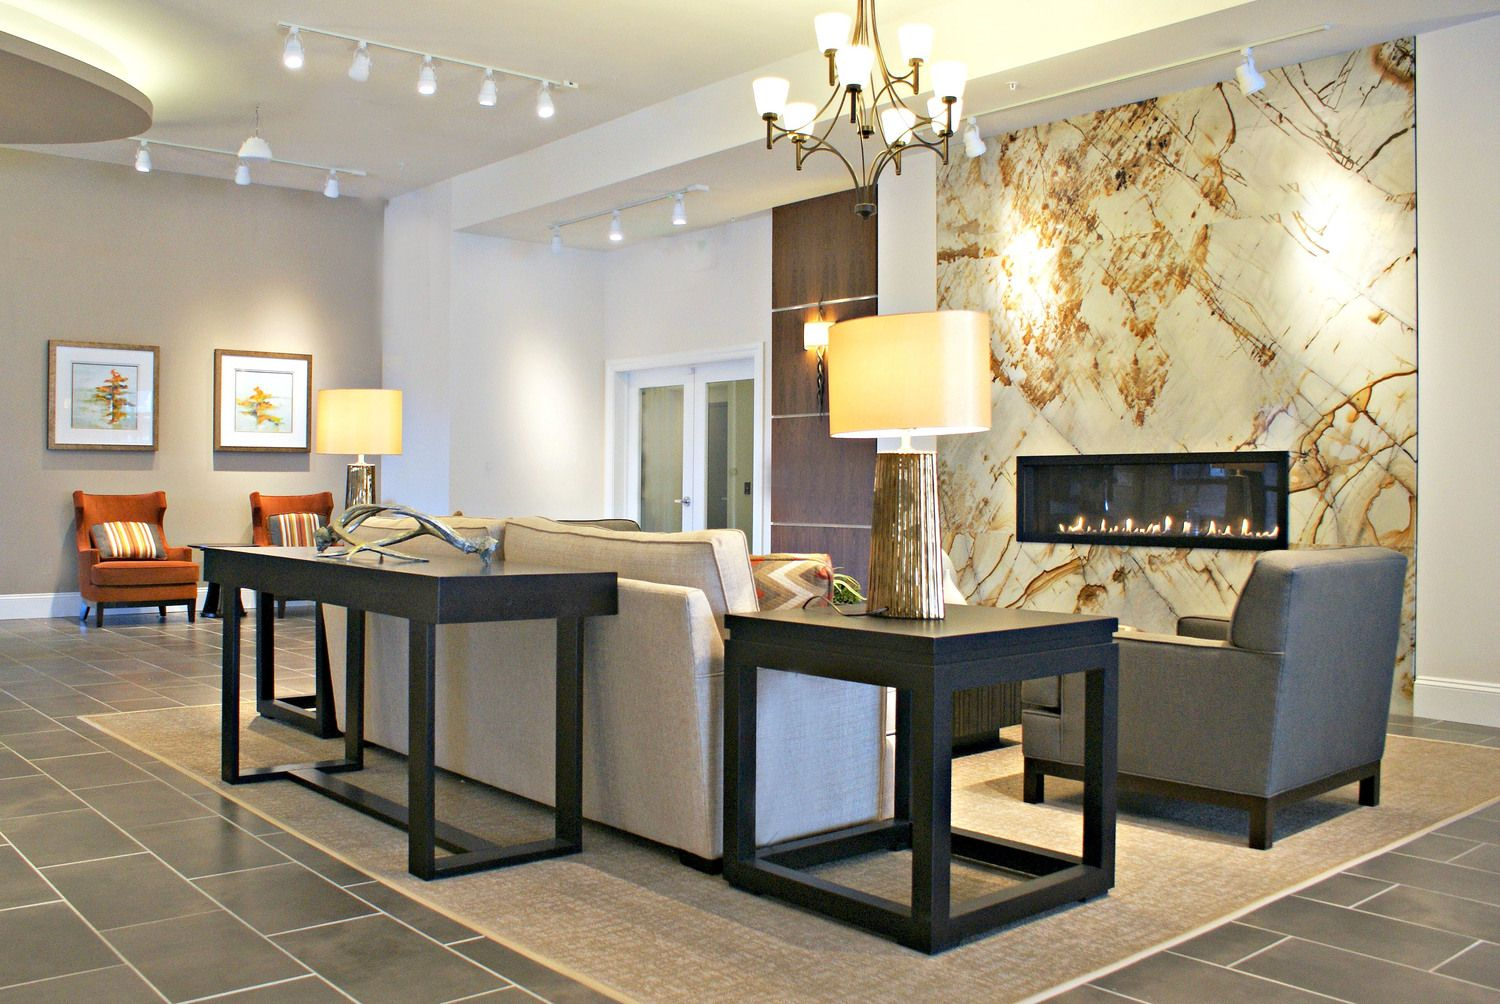 Clubhouse and Amenity Space Designs Interior design